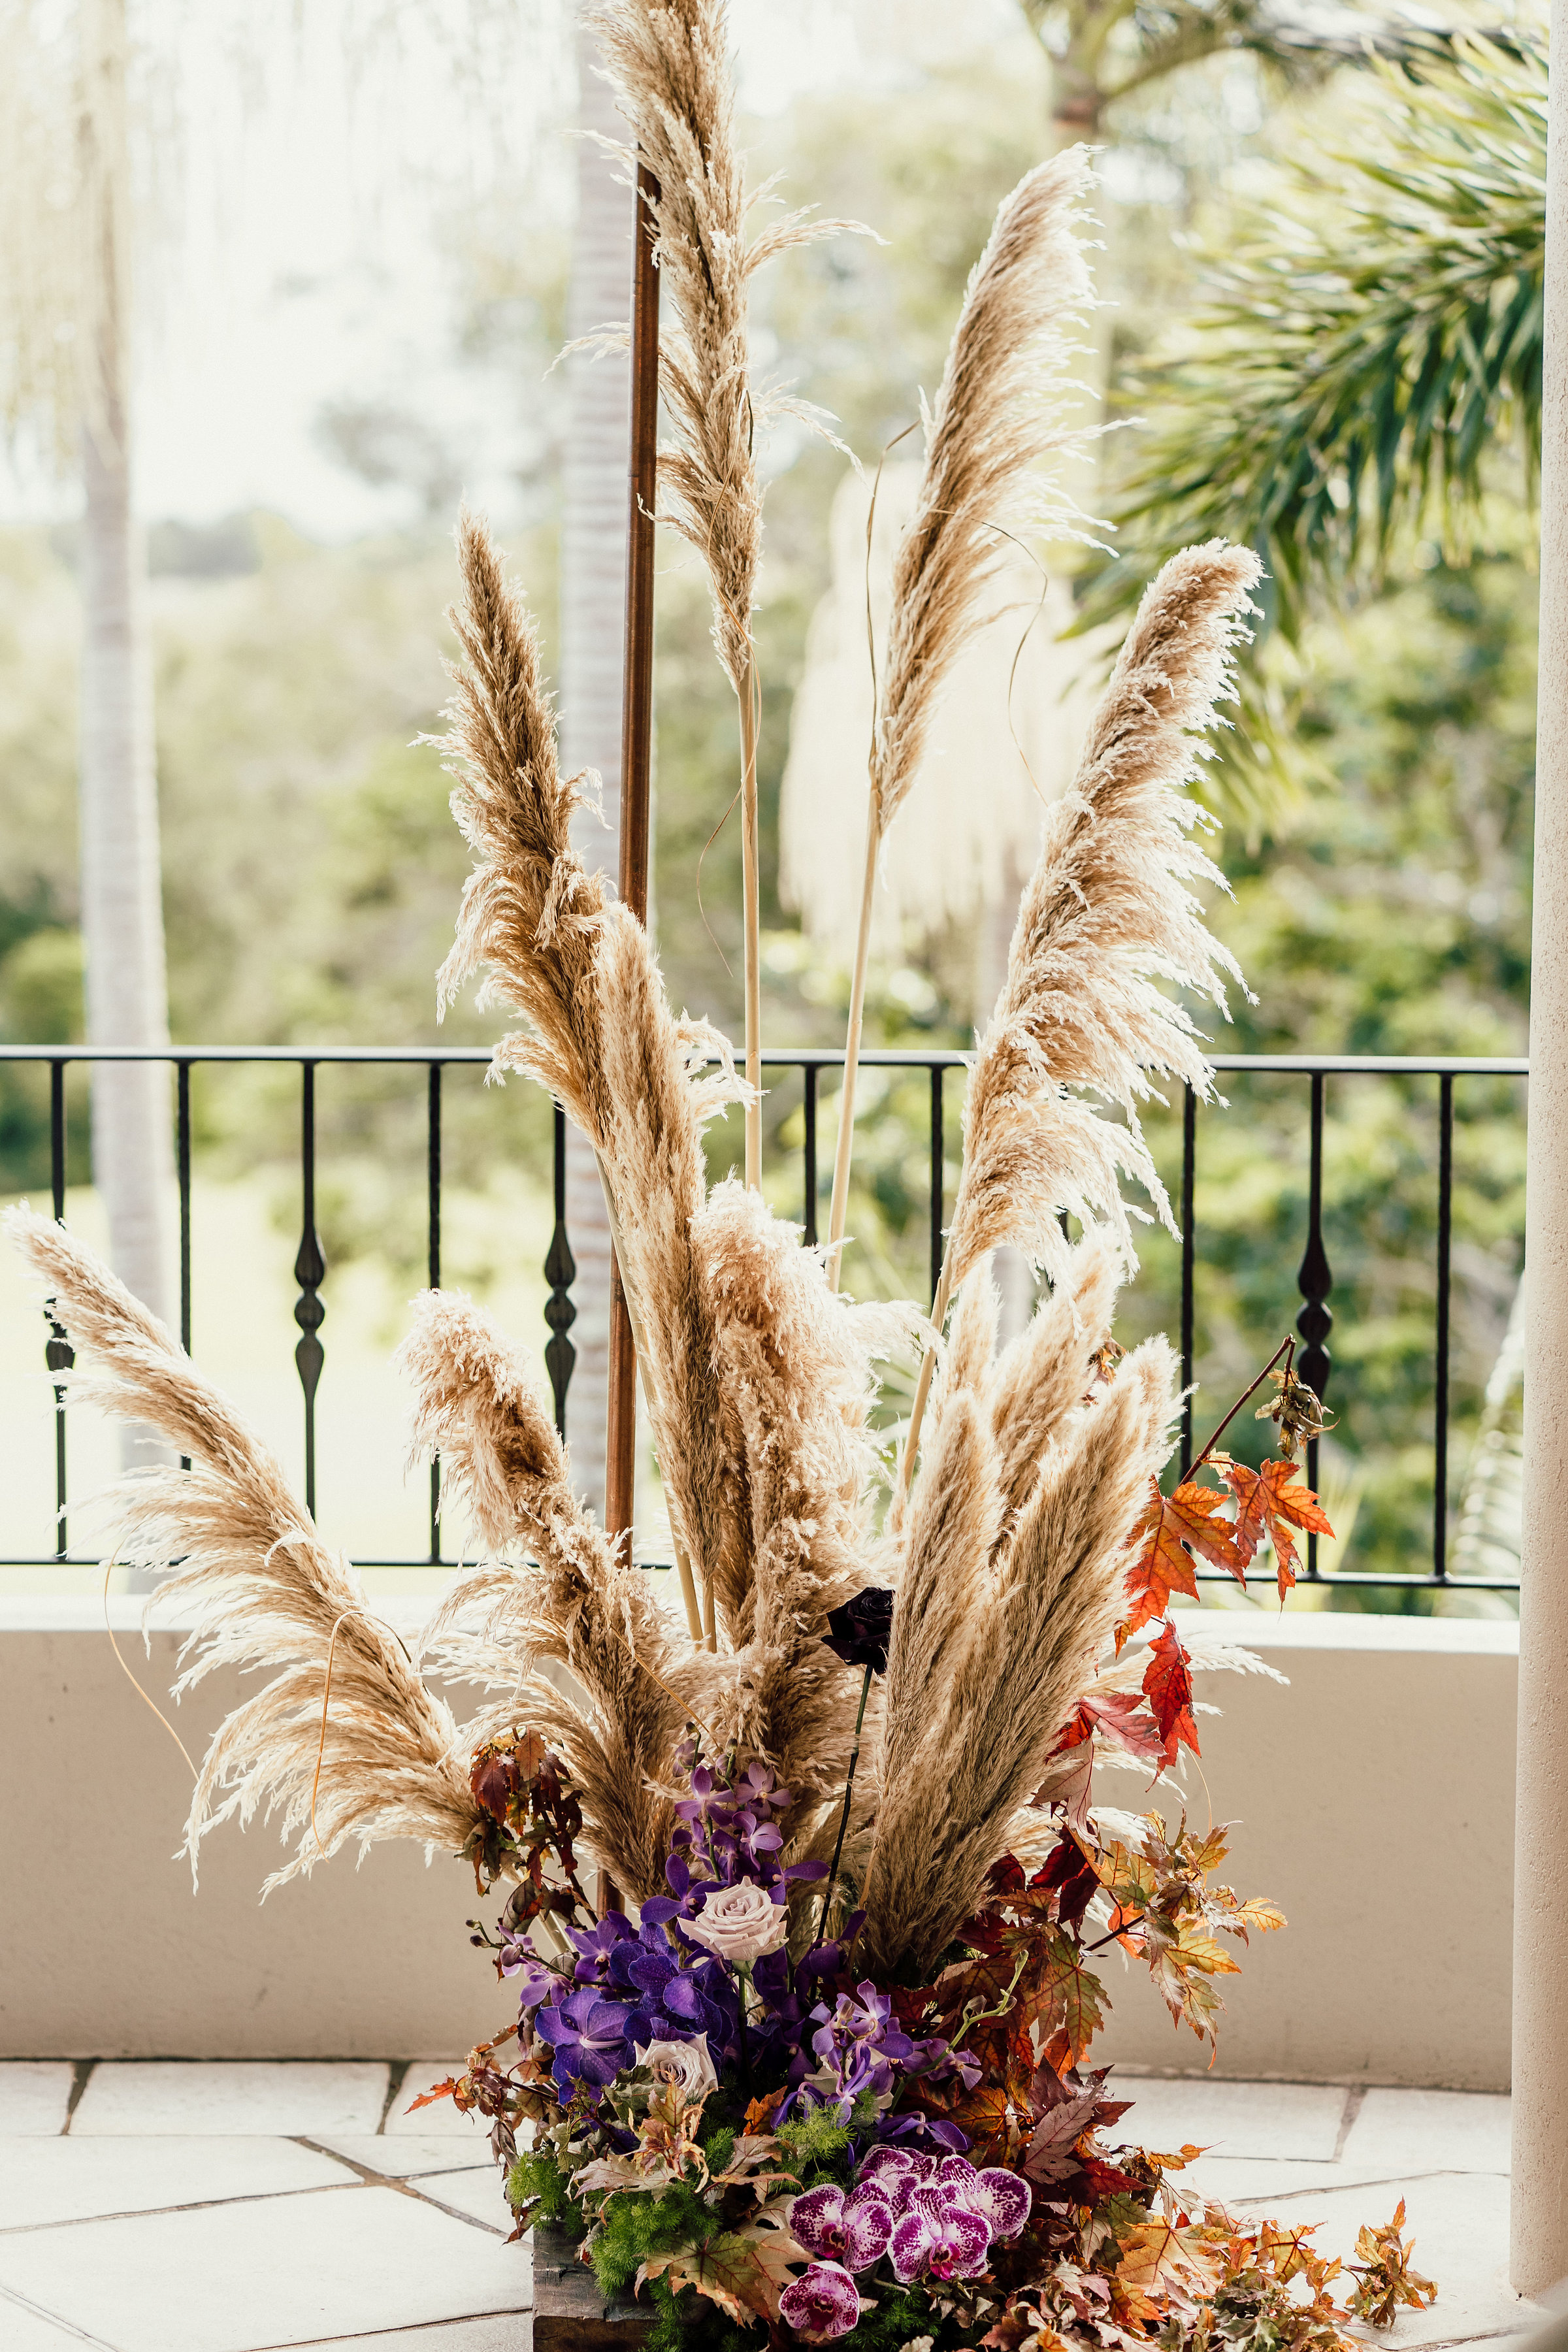 Bloodwood Botanica | Arbour base pampas and purple orchids